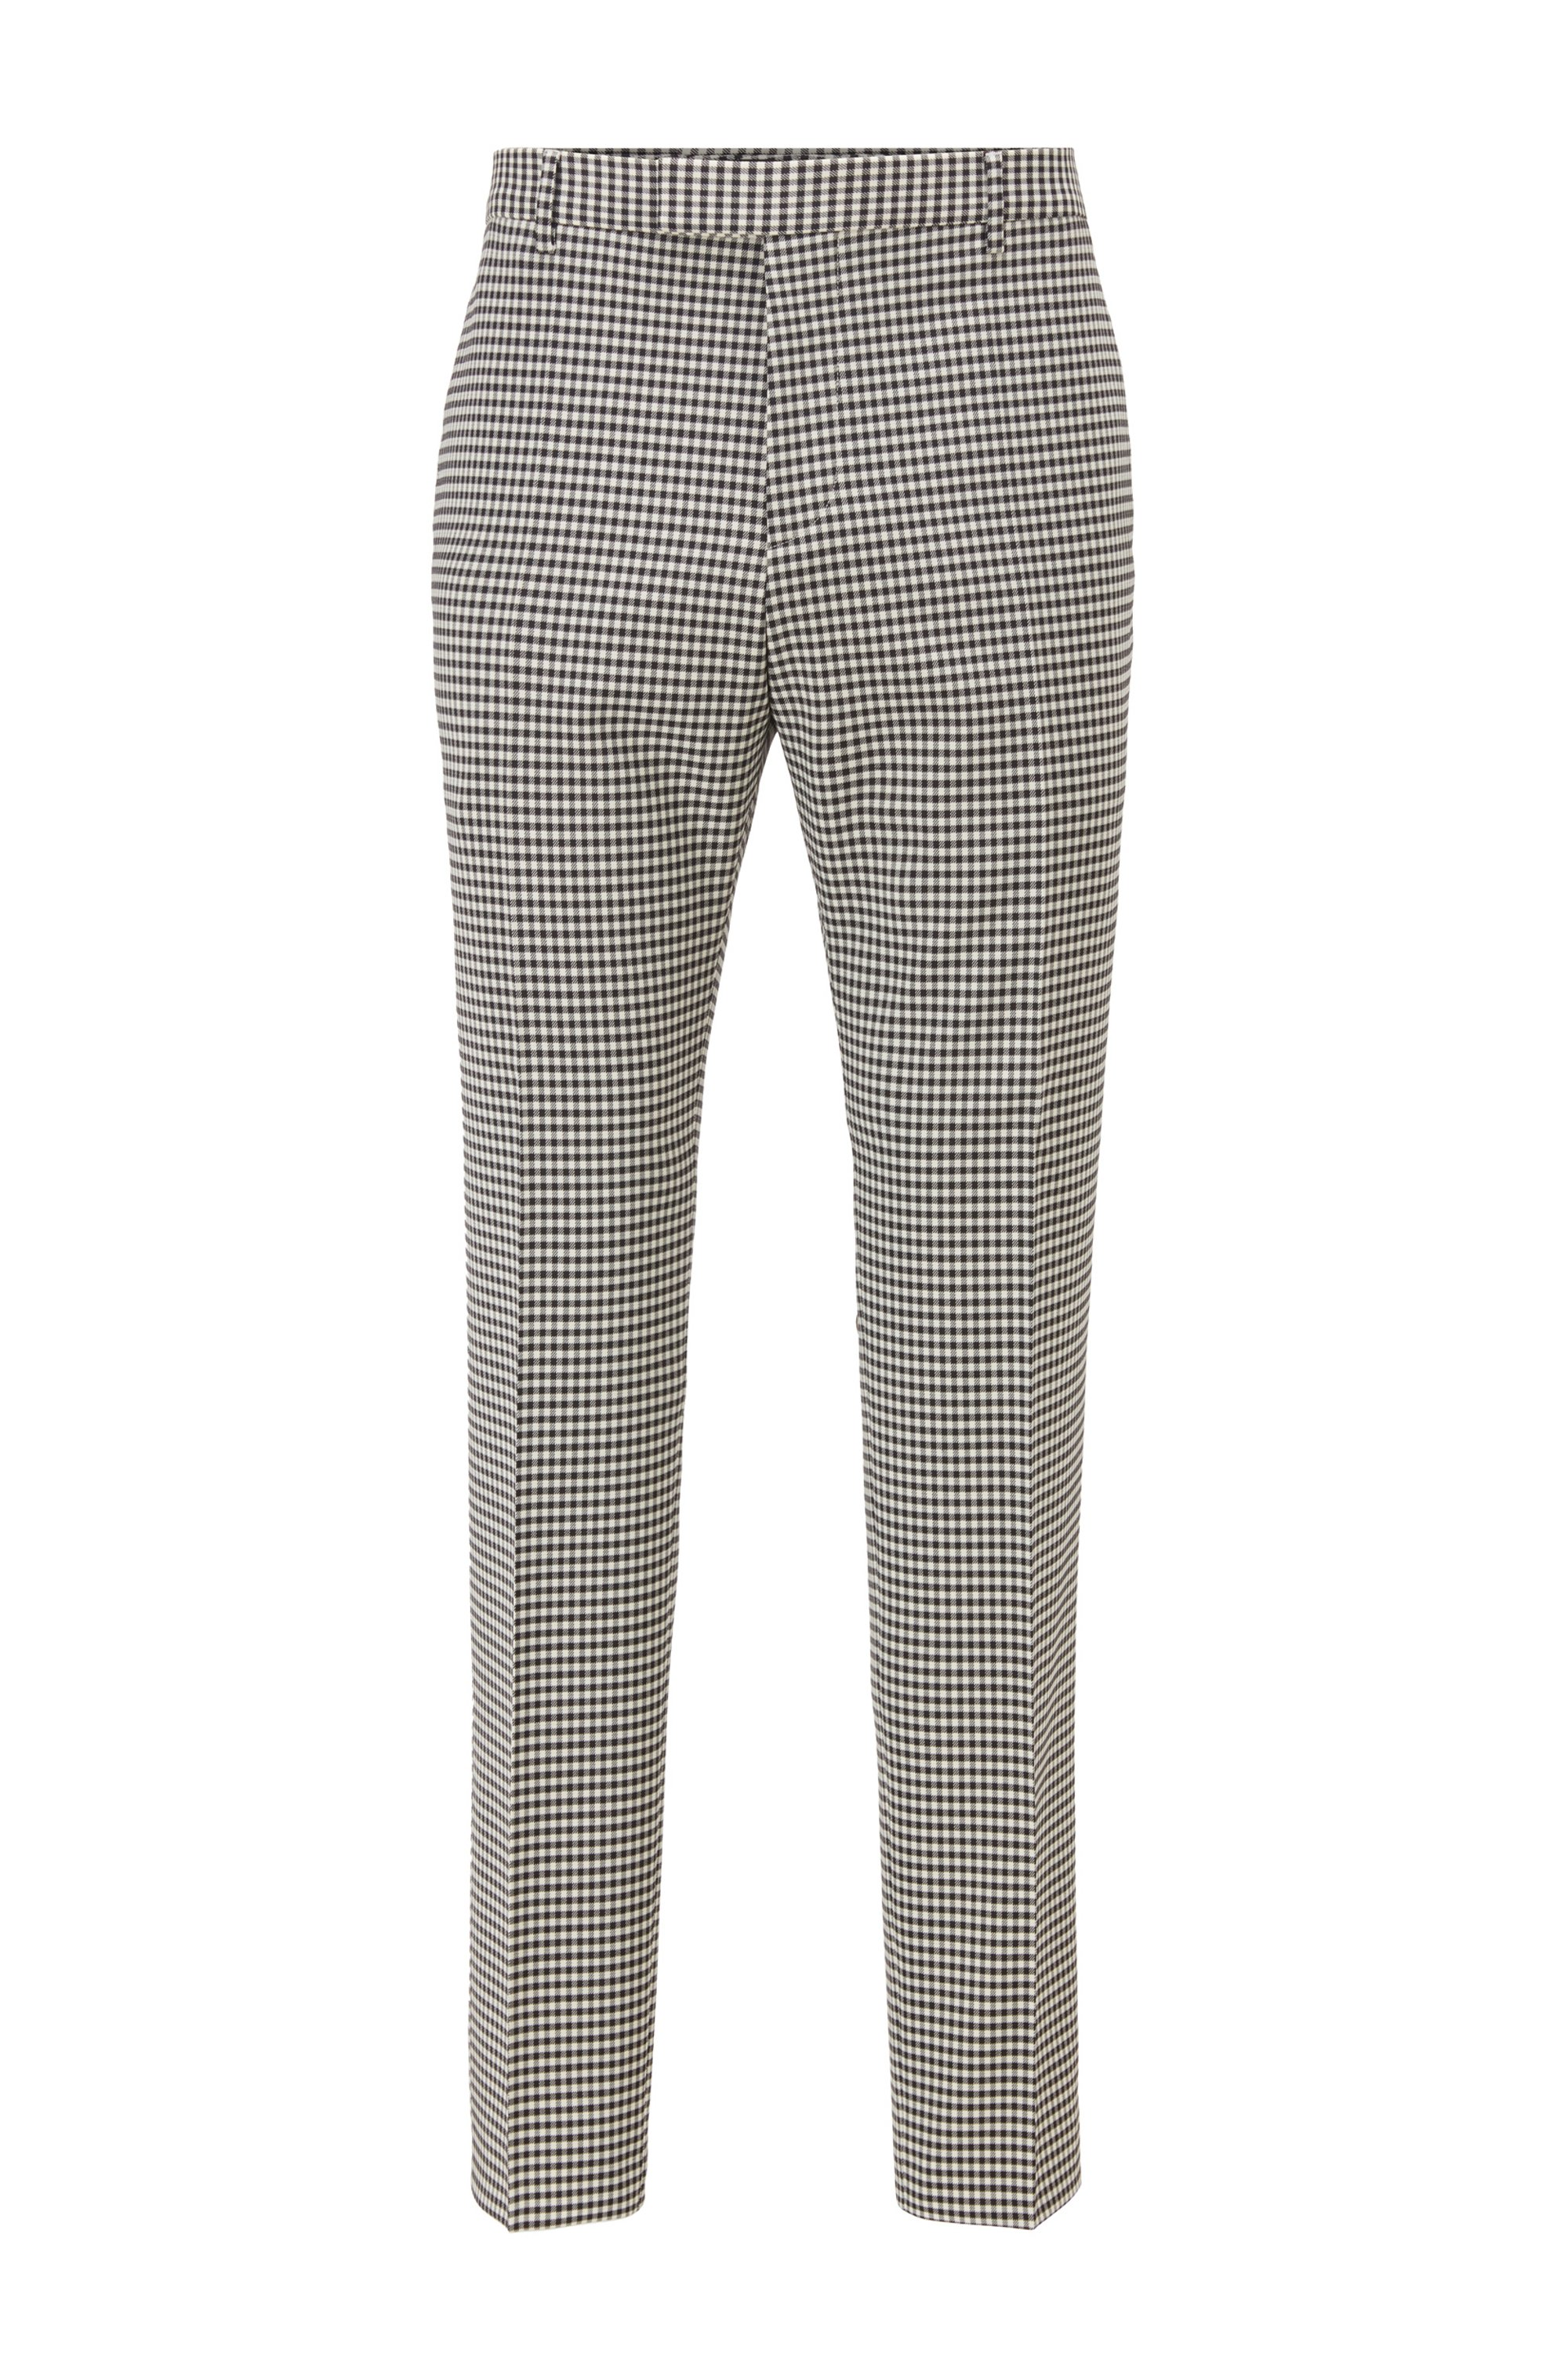 Extra-slim-fit pants in patterned stretch fabric, Black